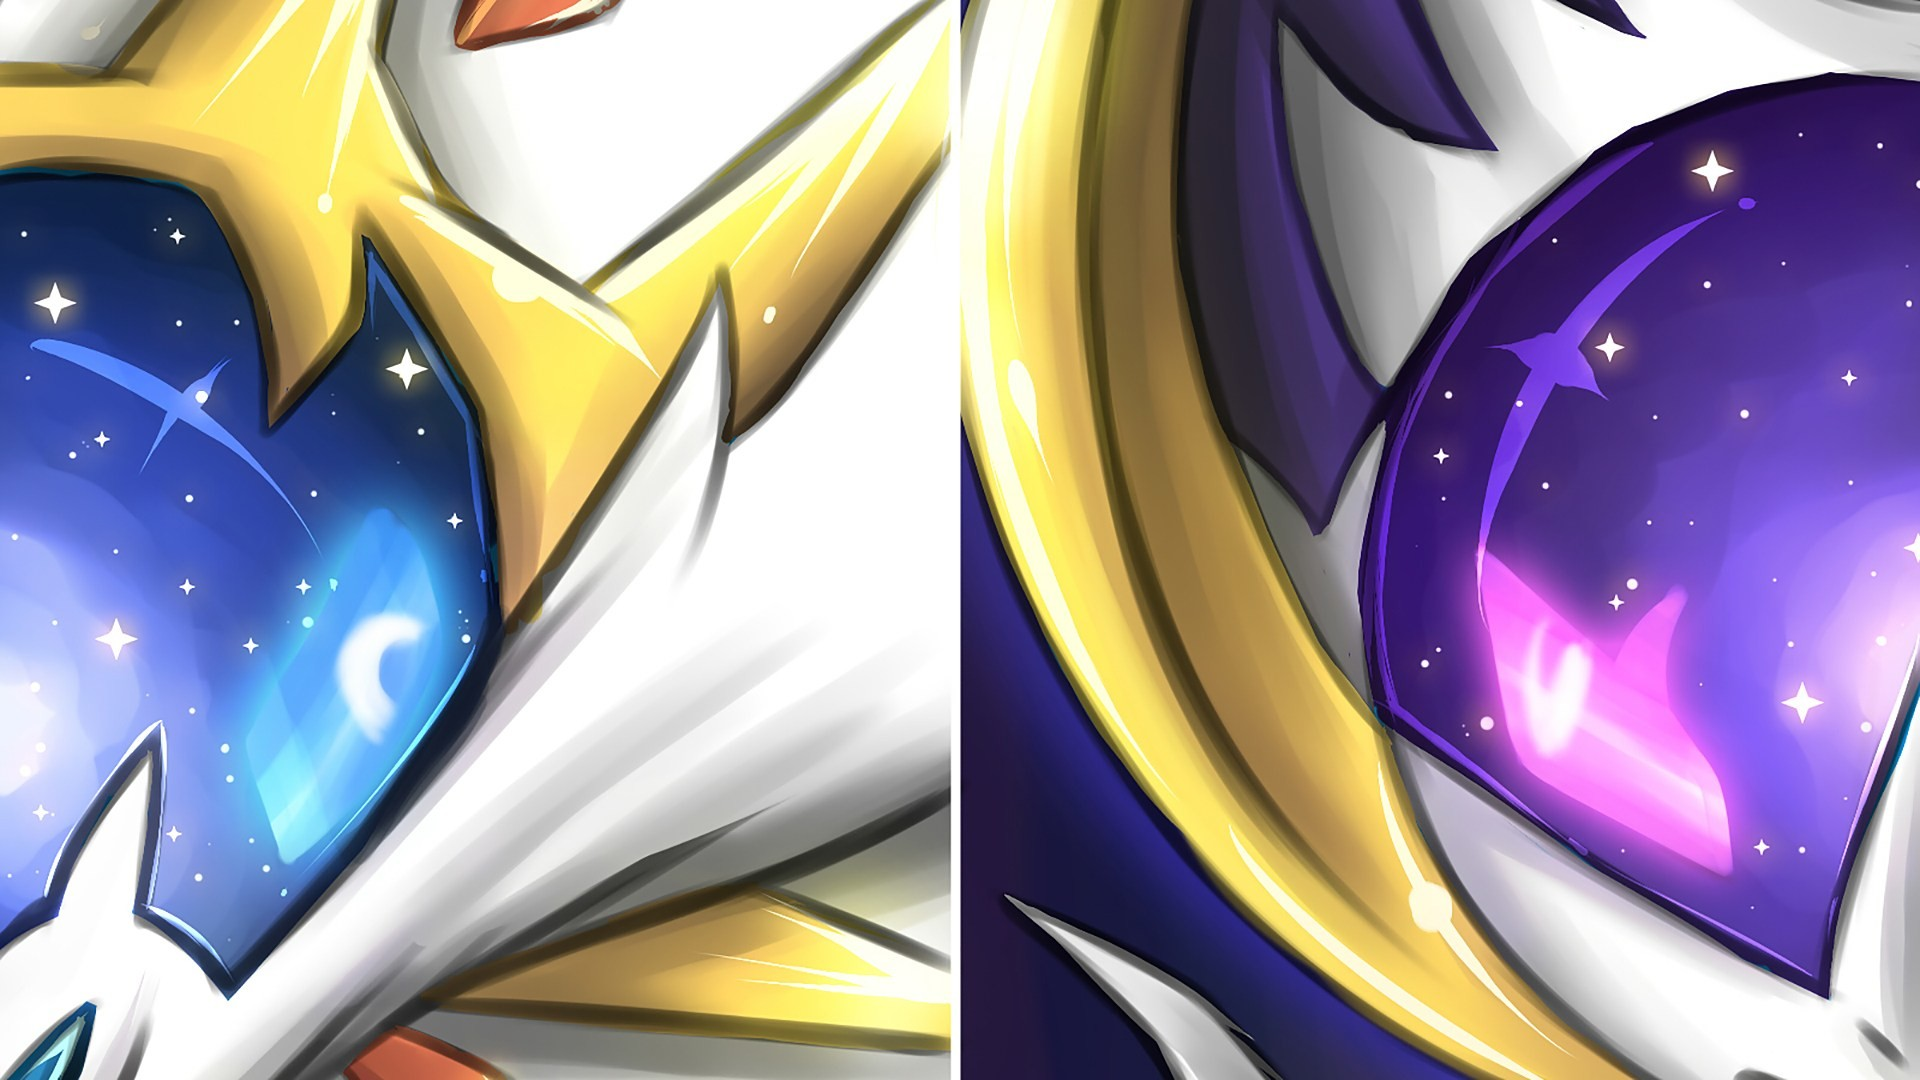 1920x1080 Solgaleo Pokemon Sun and Moon Pokemon Lunala 1080p HD Wallpaper Background